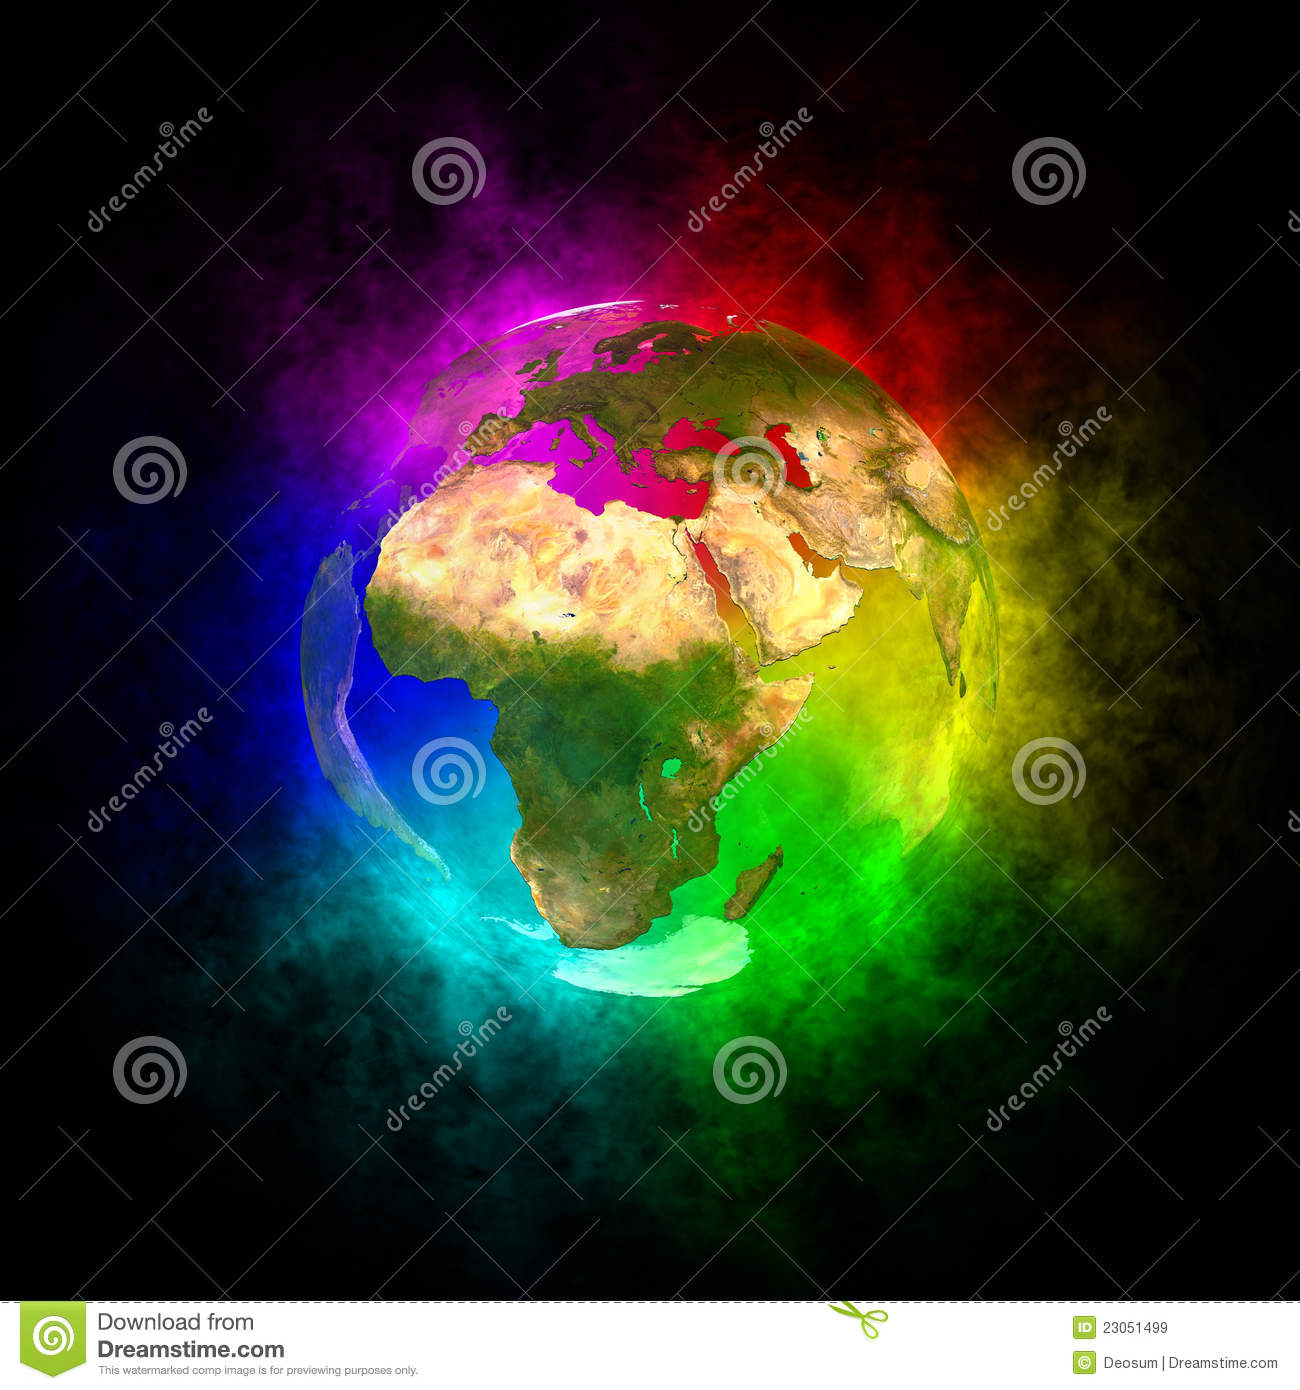 https://thumbs.dreamstime.com/z/rainbow-planet-earth-europe-23051499.jpg